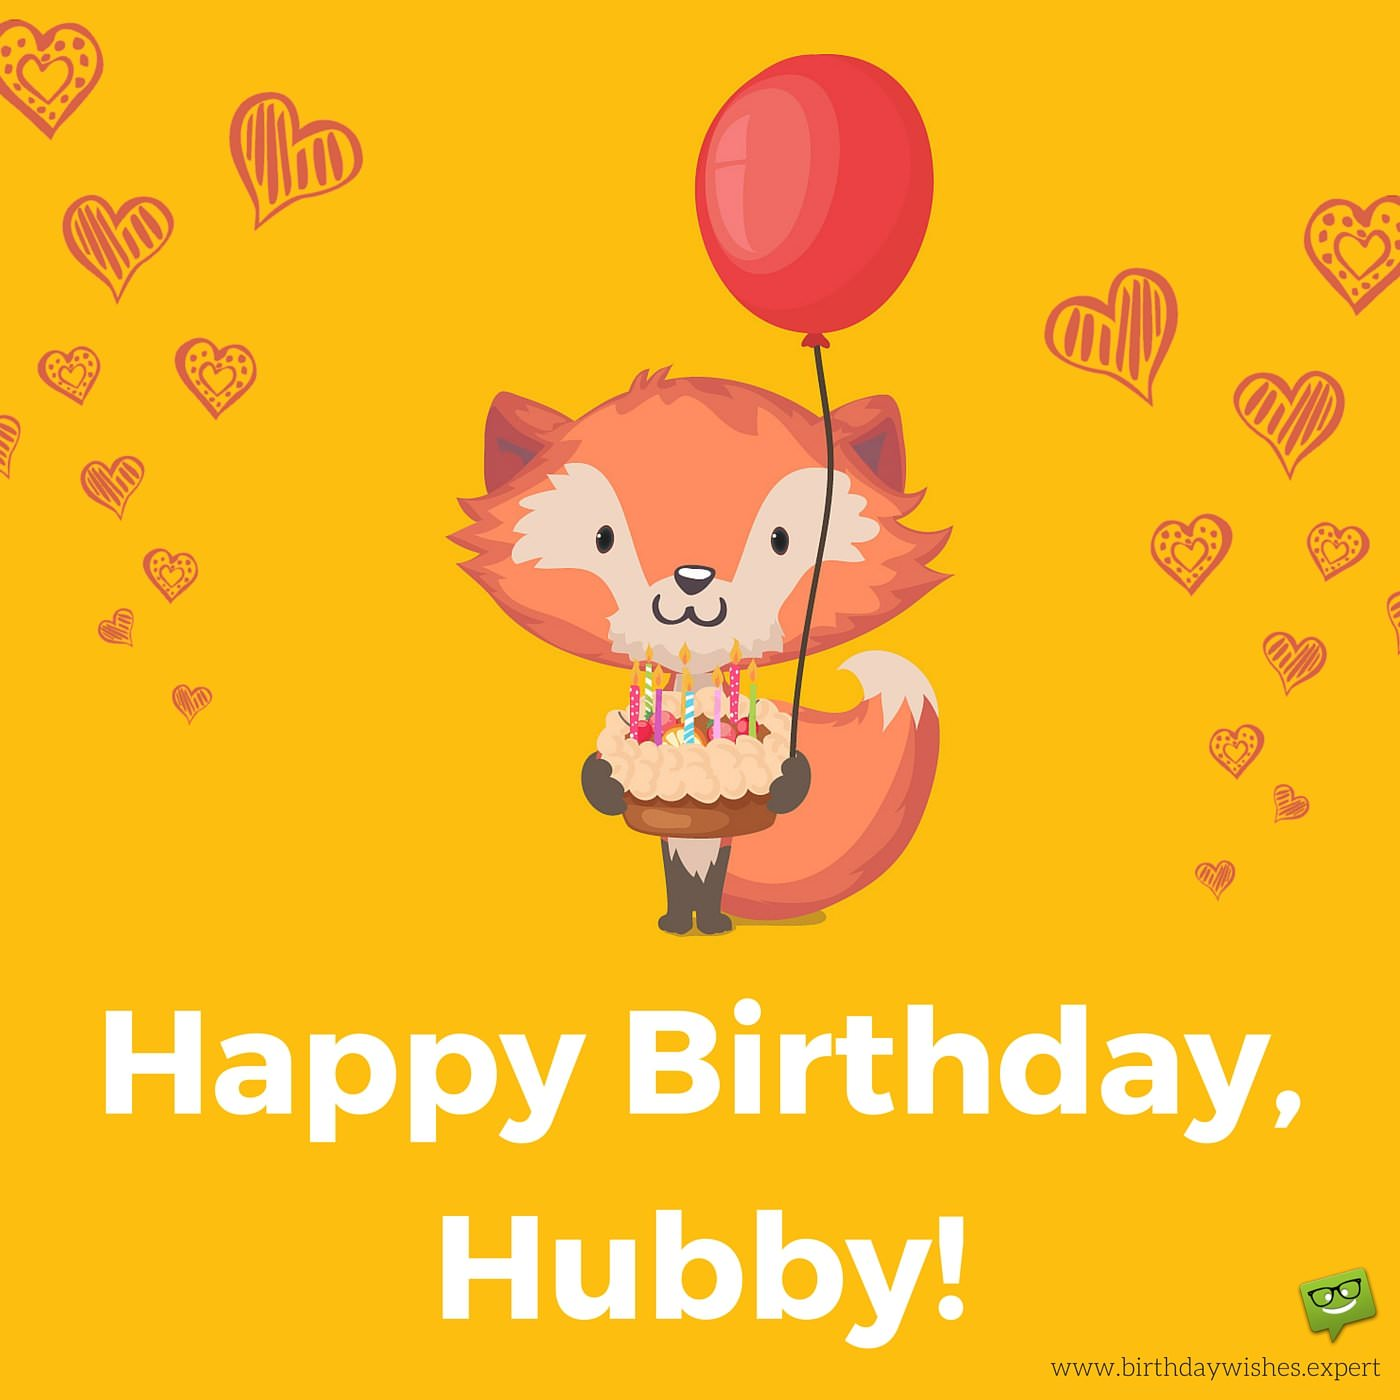 sweet happy birthday message for husband ; Happy-Birthday-Hubby-With-cute-fox-holding-a-birthday-cake-and-a-balloon